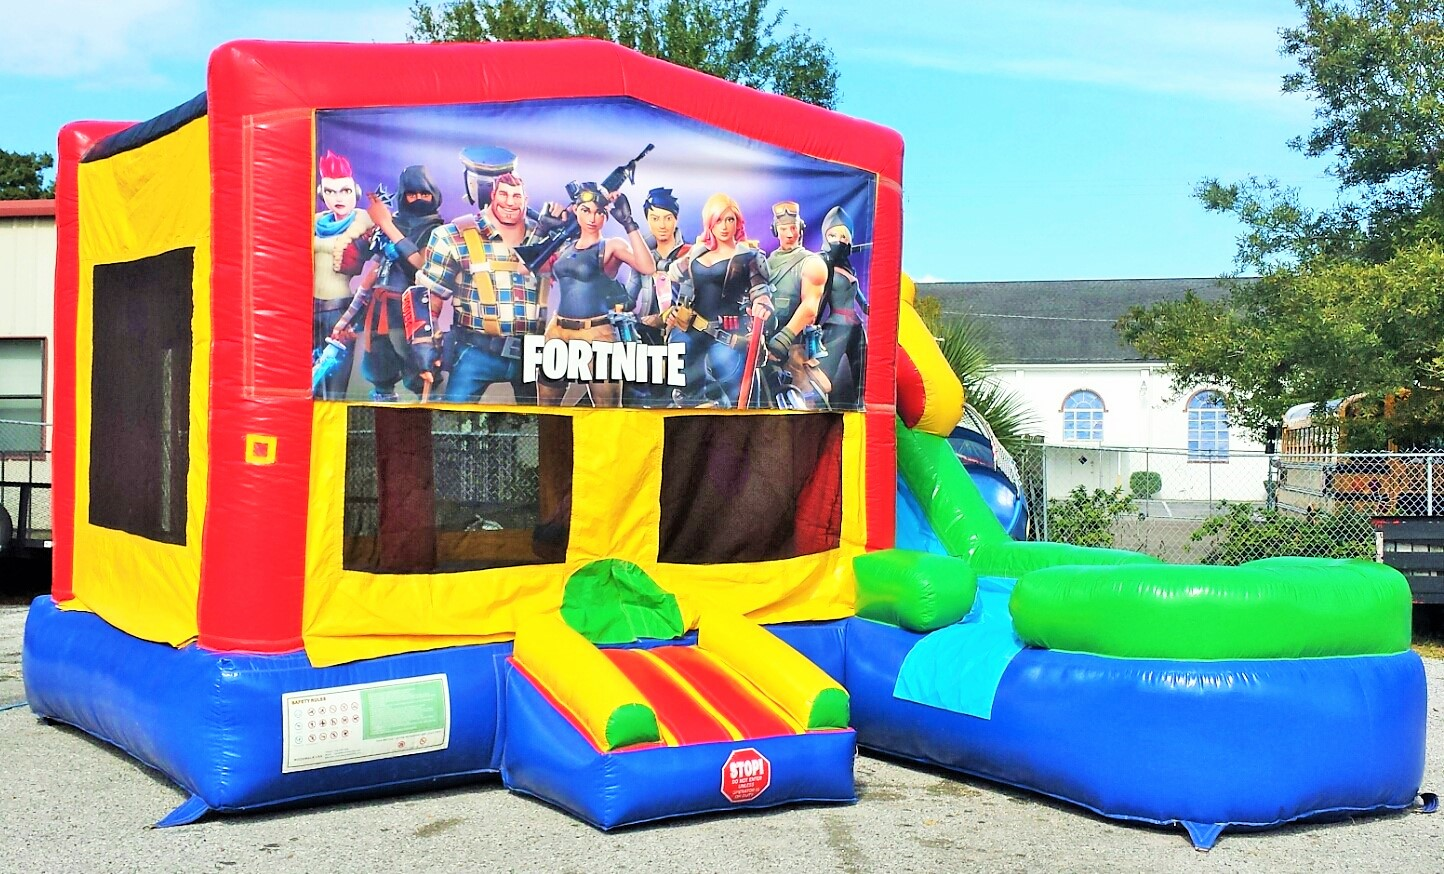 secure your date today book online or call 813 996 2935 - fortnite party jumper